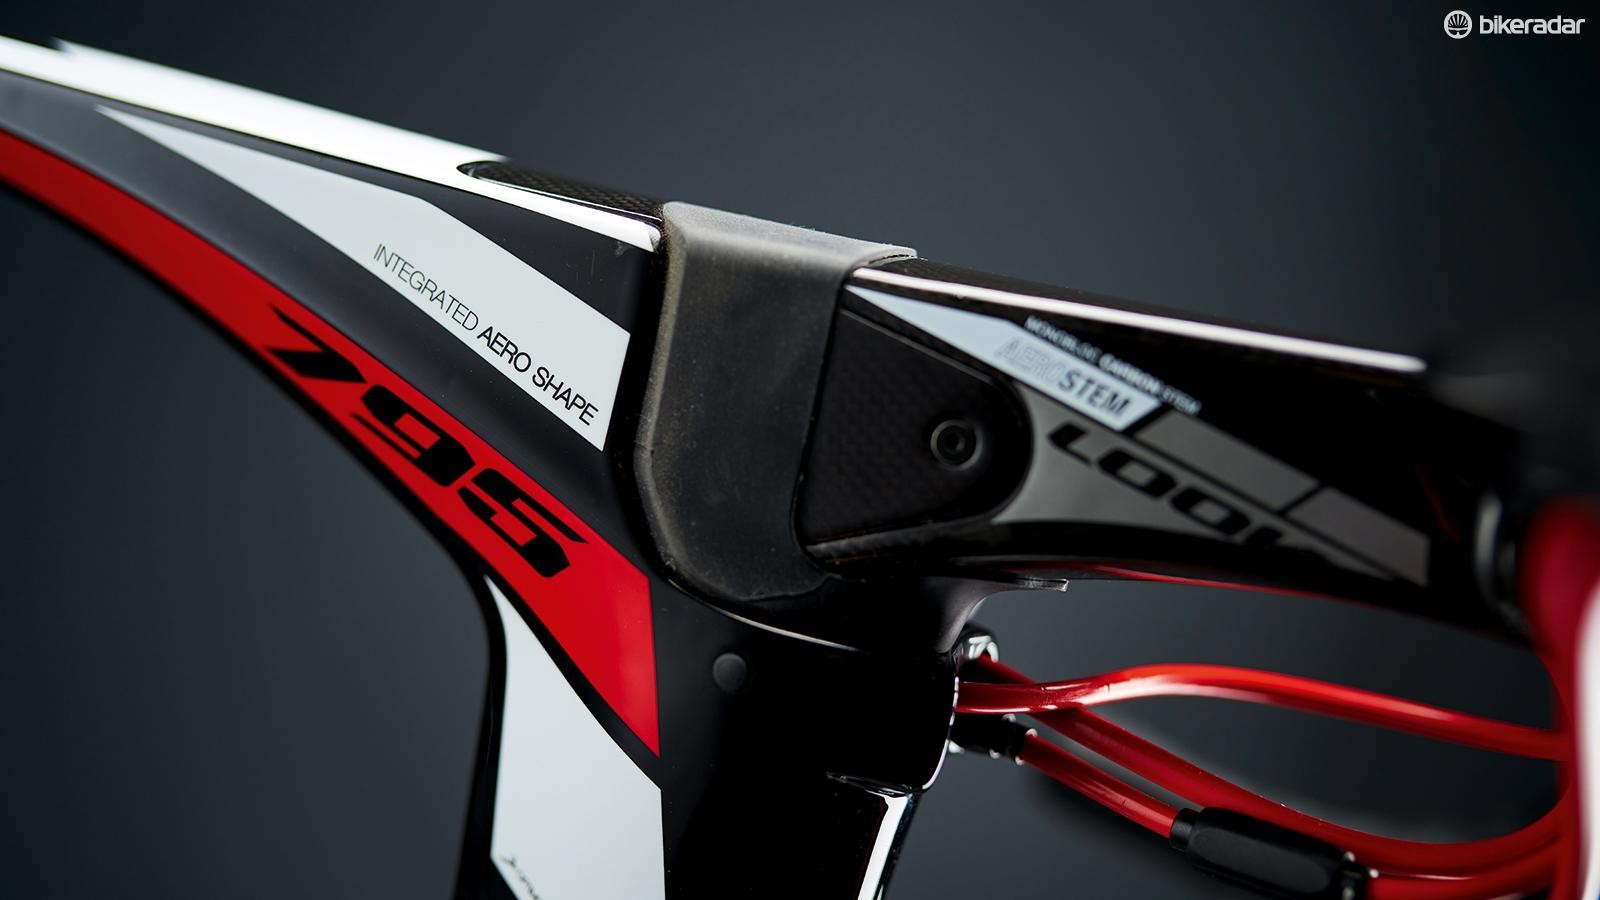 The stem aligns neatly to the top tube; its angle can be adjusted internally in place of using spacers